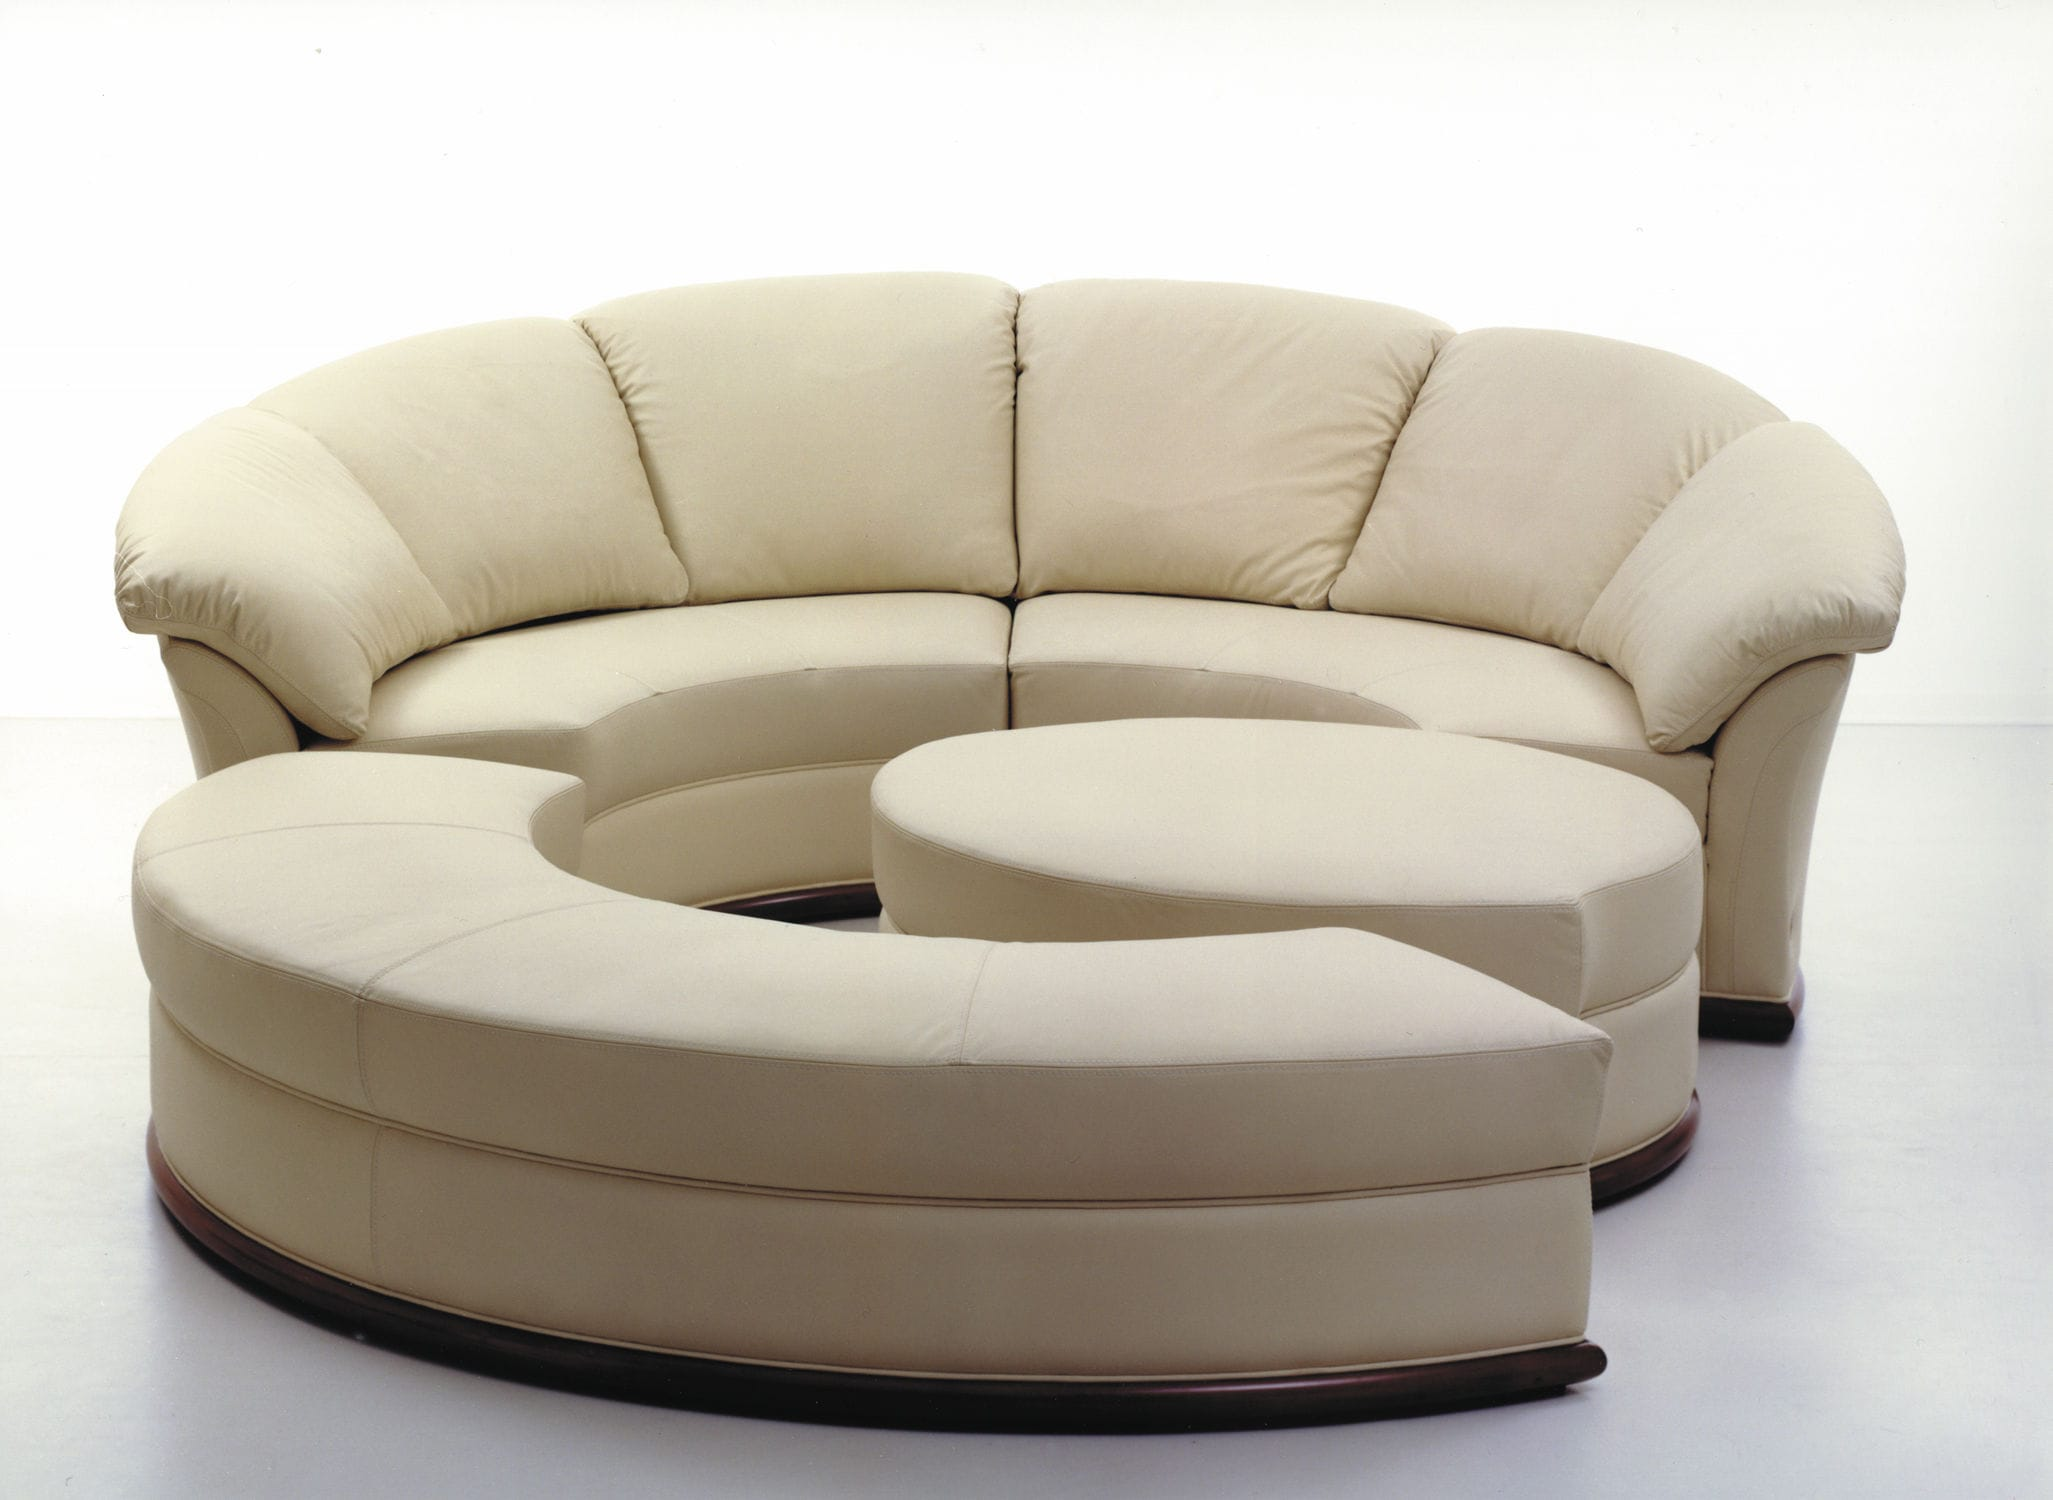 Round sofa modular contemporary leather PLANET Nieri